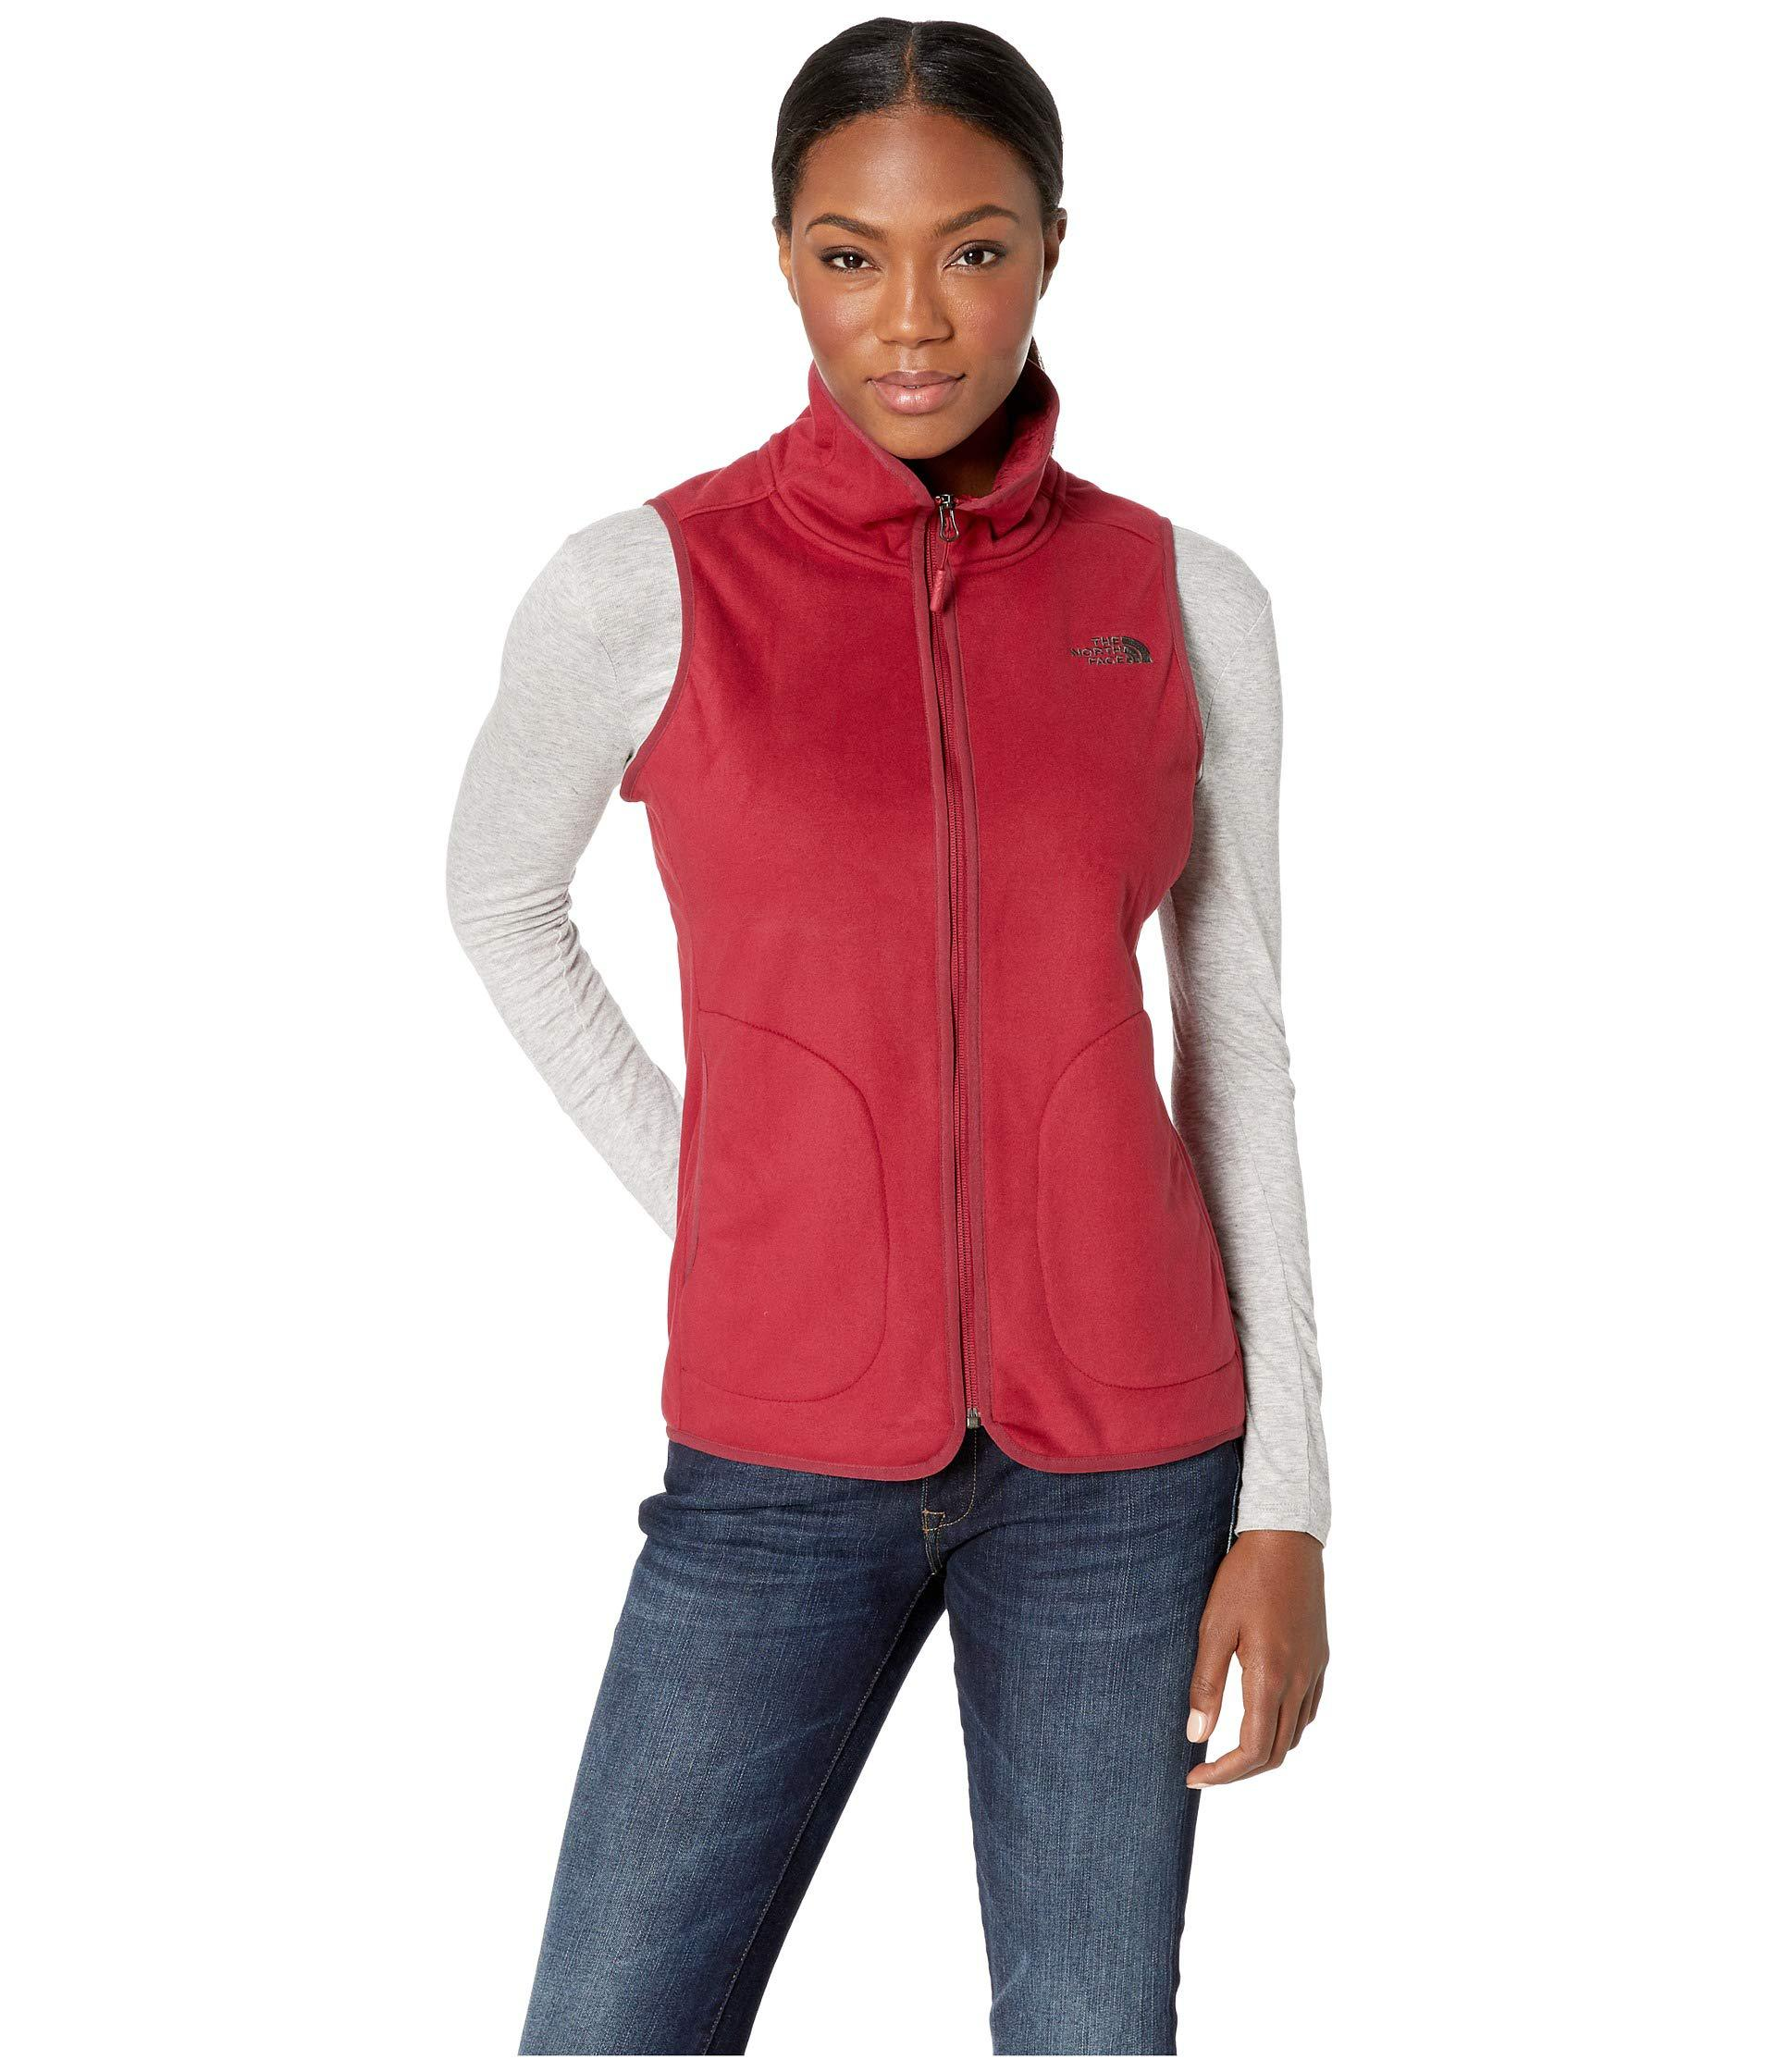 7b30ceefac1f Lyst - The North Face Mosswood Vest (tnf Black) Women s Vest in Red